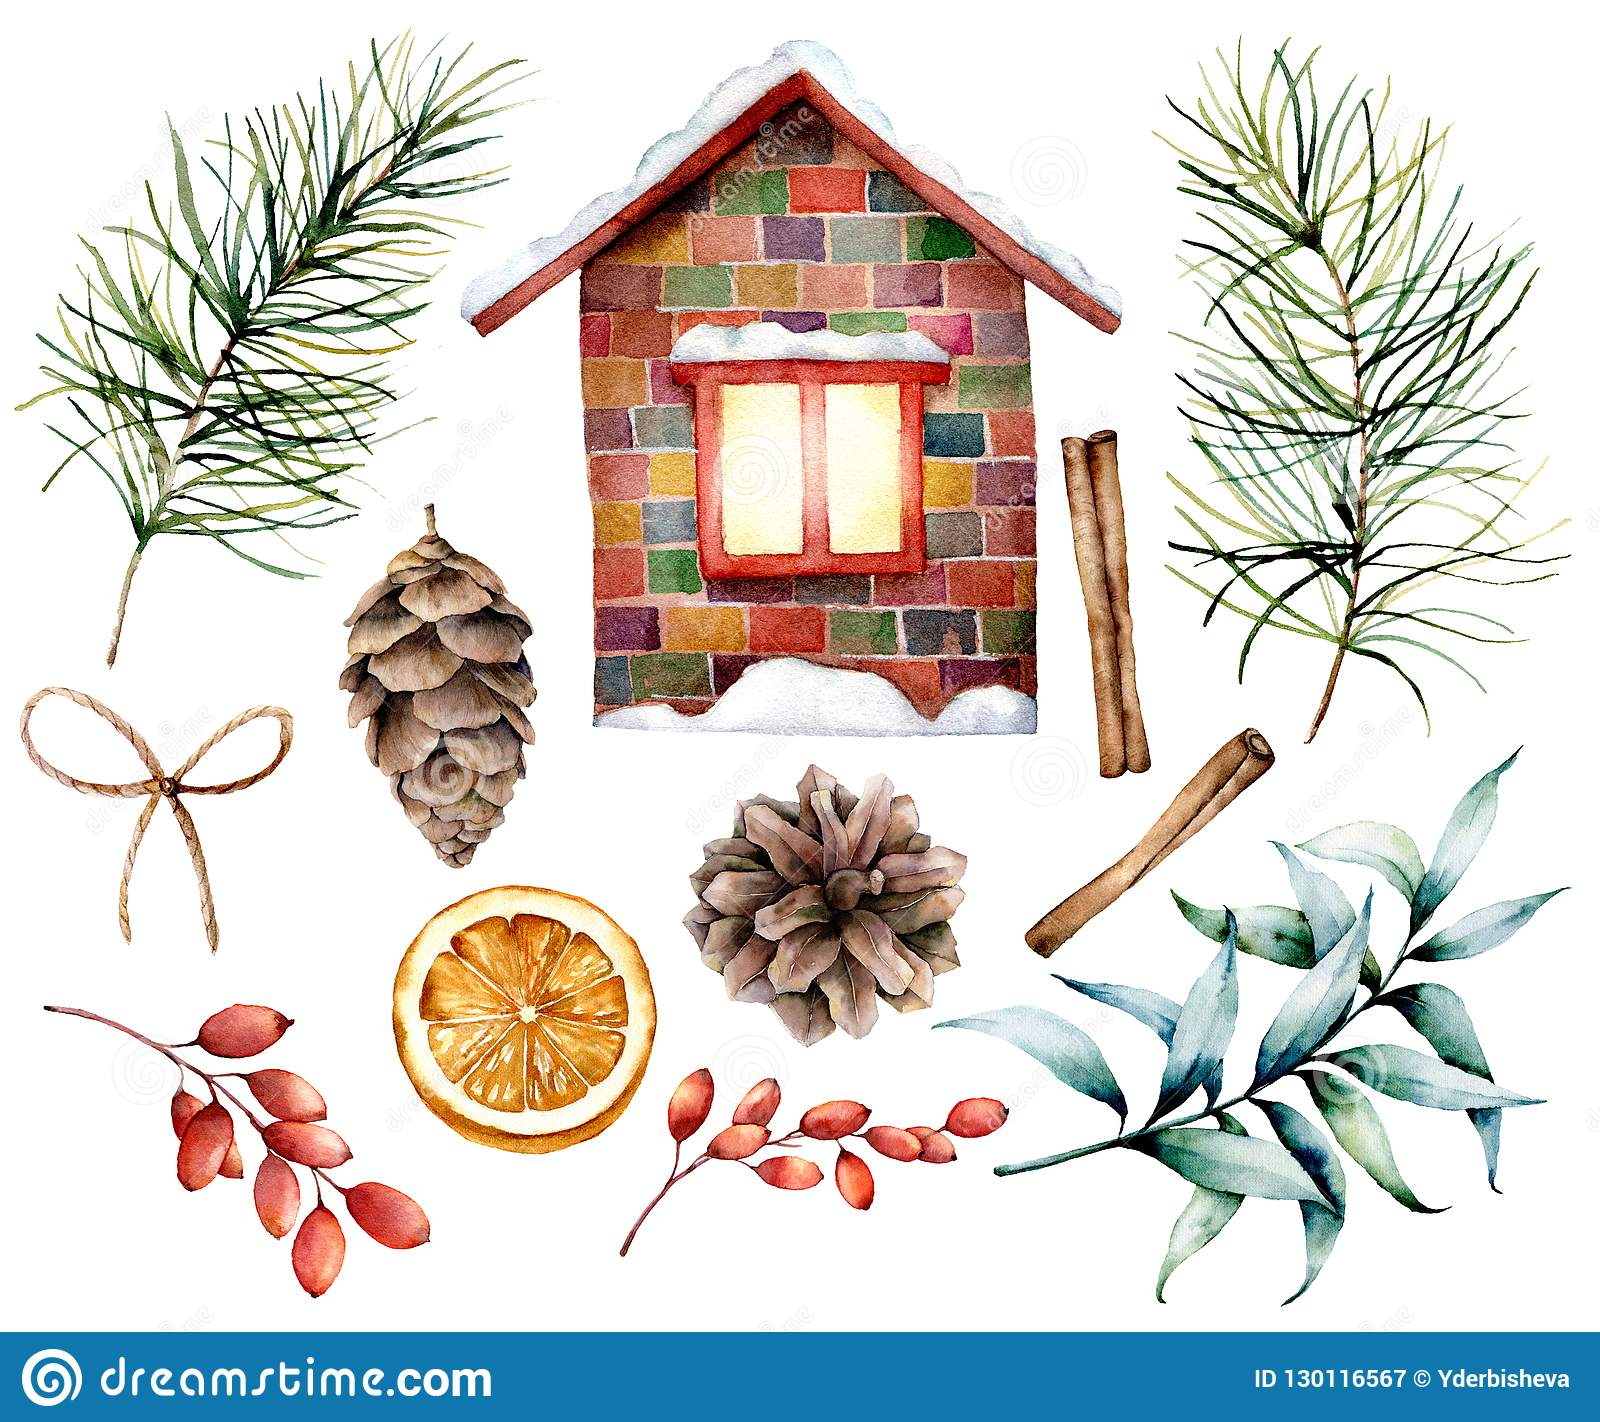 Watercolor Christmas decor set with ceramic house. Hand painted fir branches and cones, cinnamon, barberry, eucalyptu